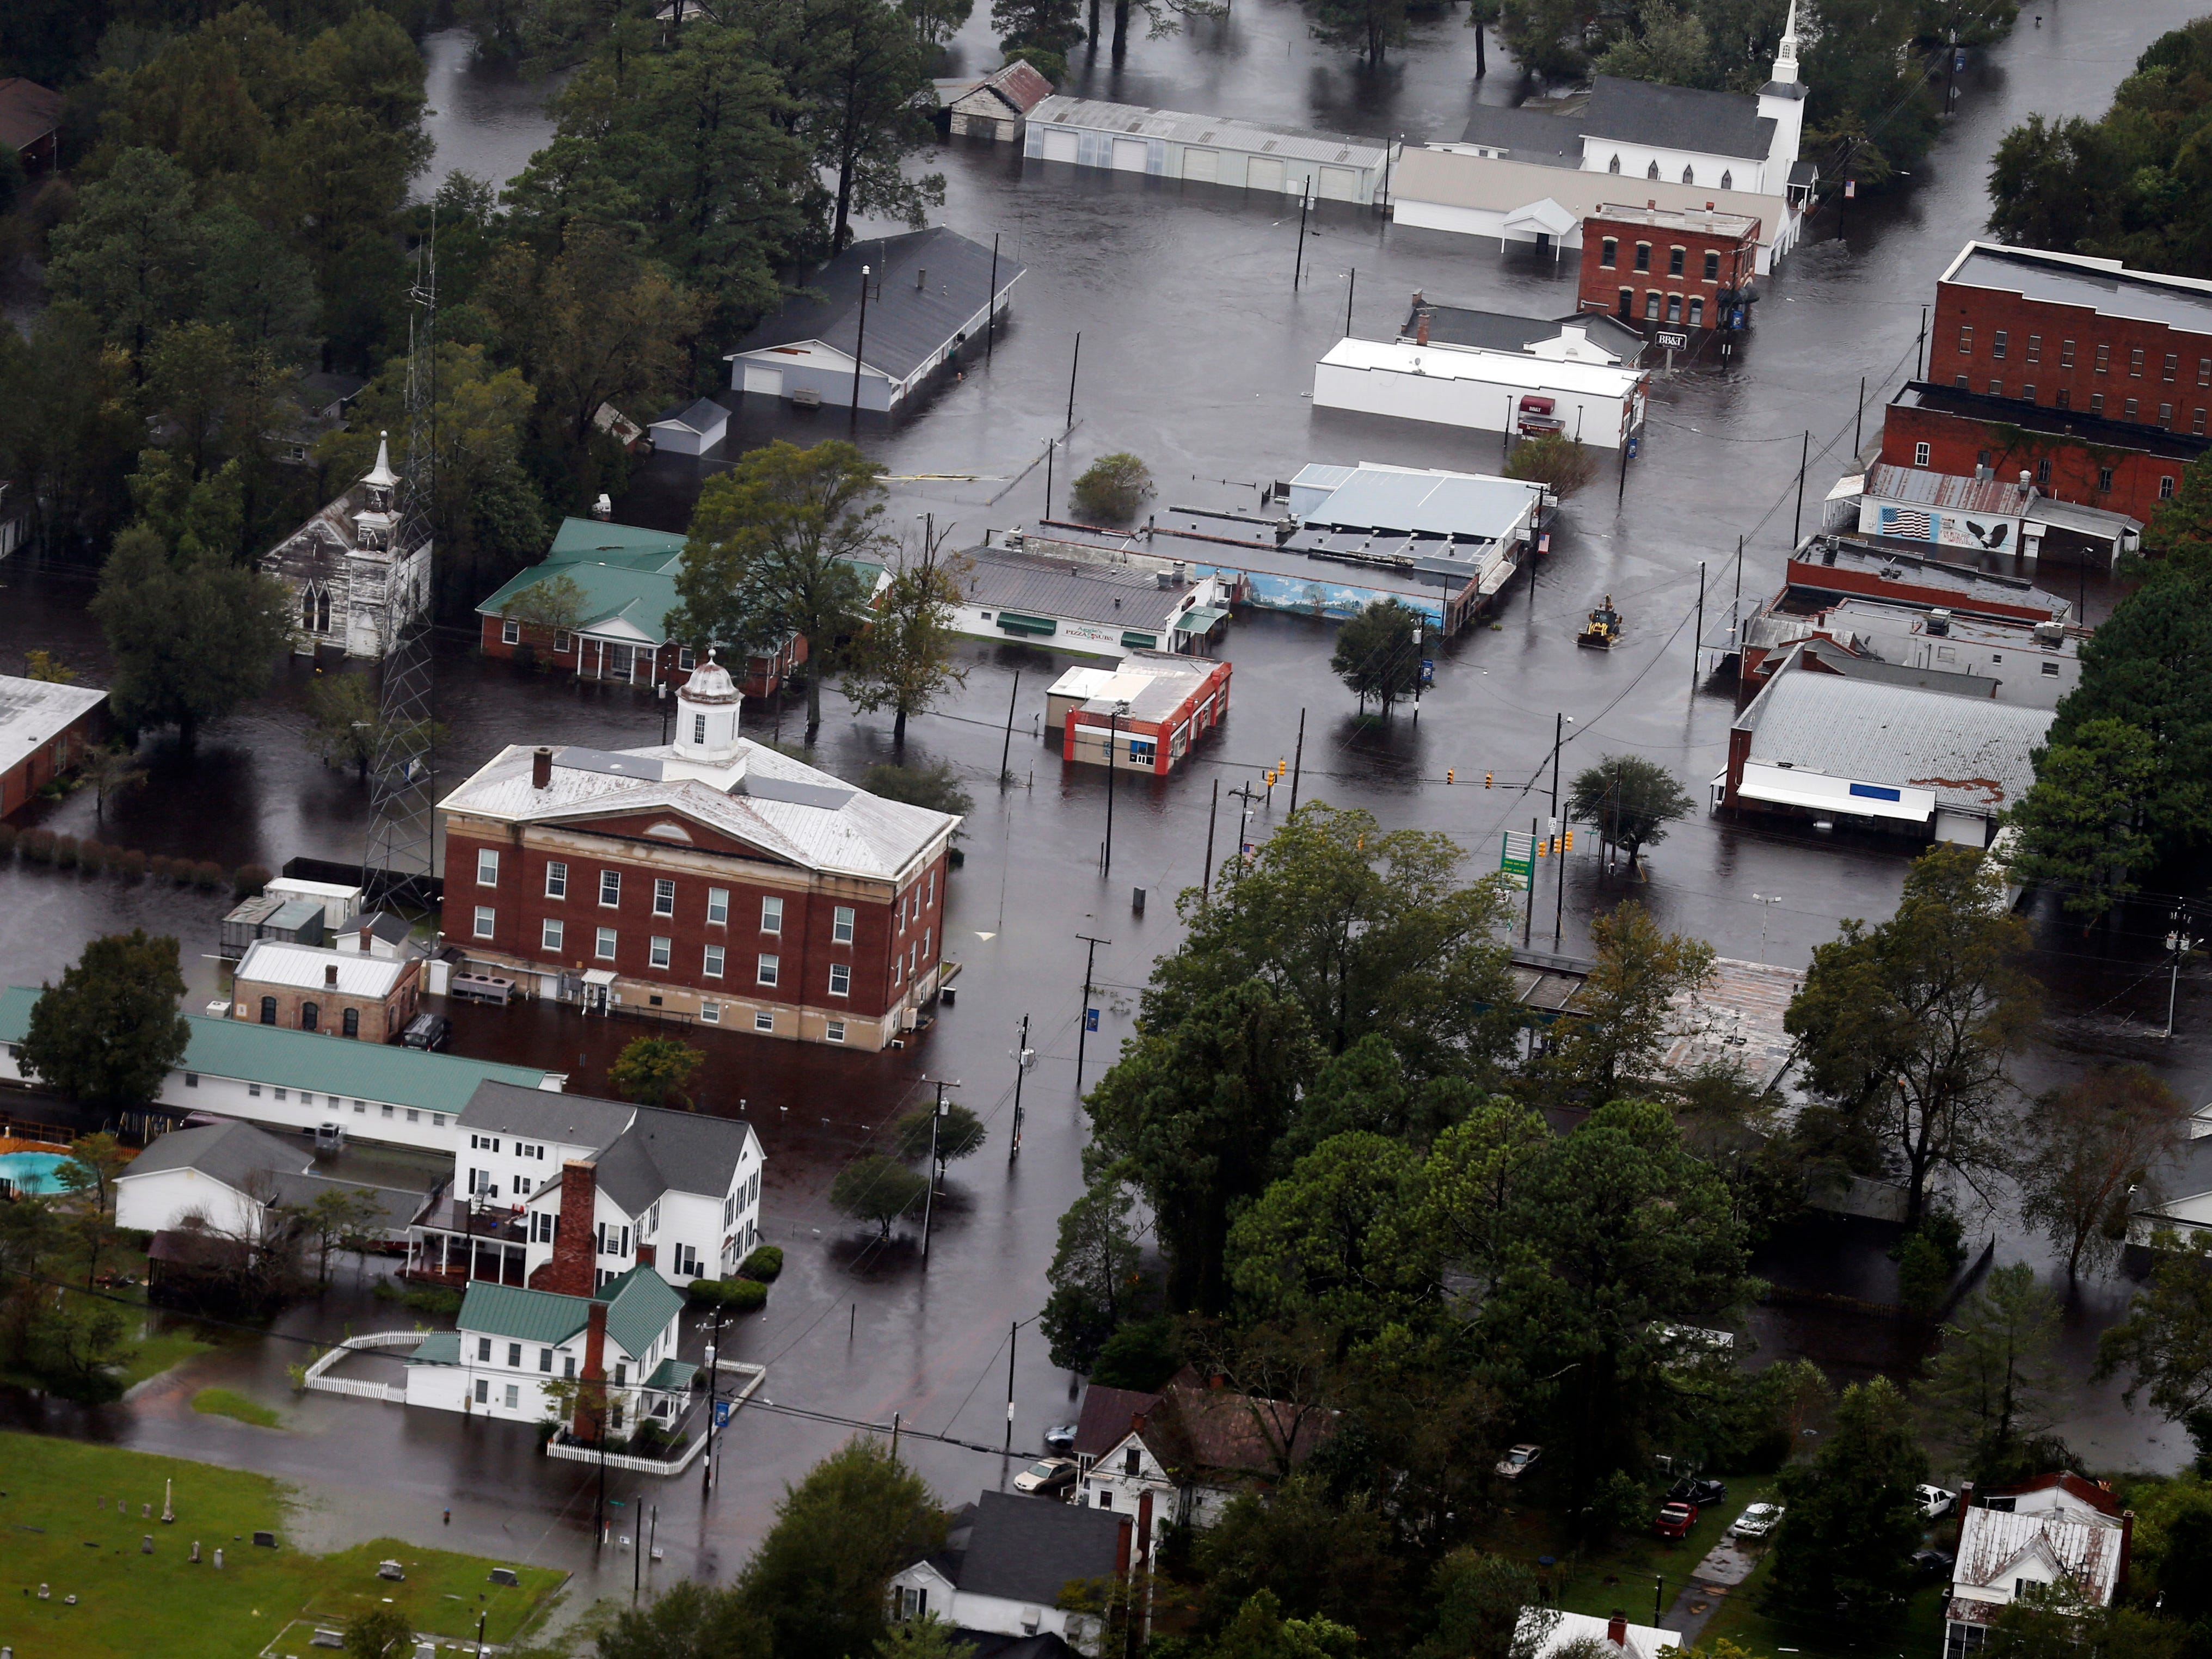 Floodwaters from Hurricane Florence inundate the town of Trenton, N.C., Sunday, Sept. 16, 2018.